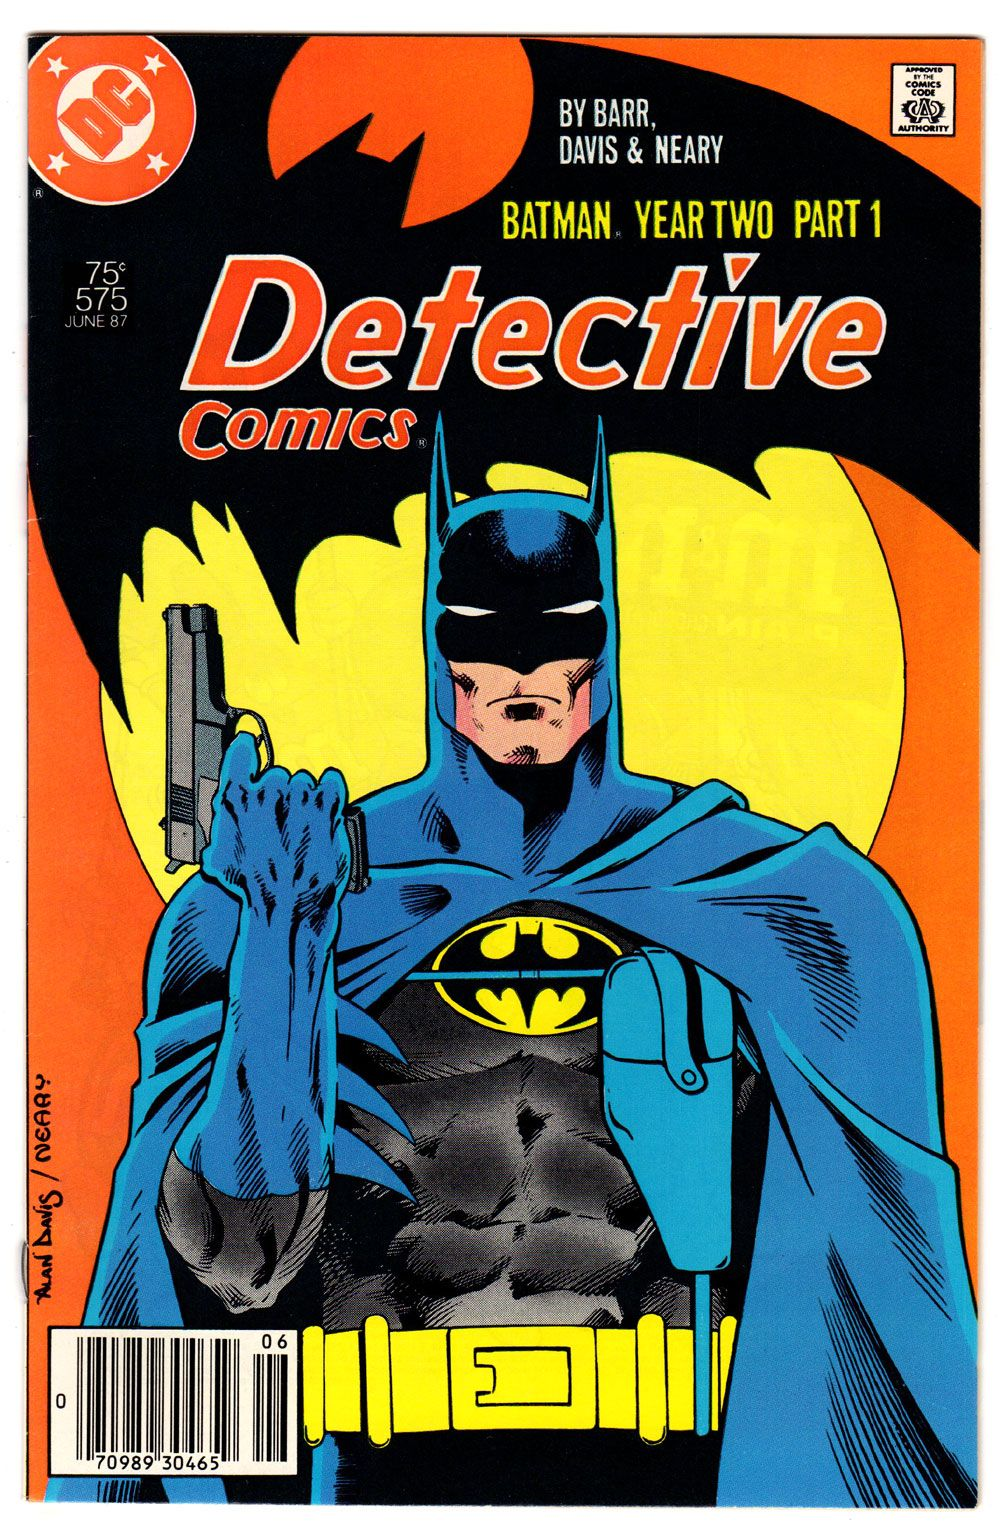 Detective comics 575 90 white pages copper age batman todd detective comics detective comics batman year two part in a story that takes place in the batmans early years the dark knight confronts the reaper fandeluxe Images